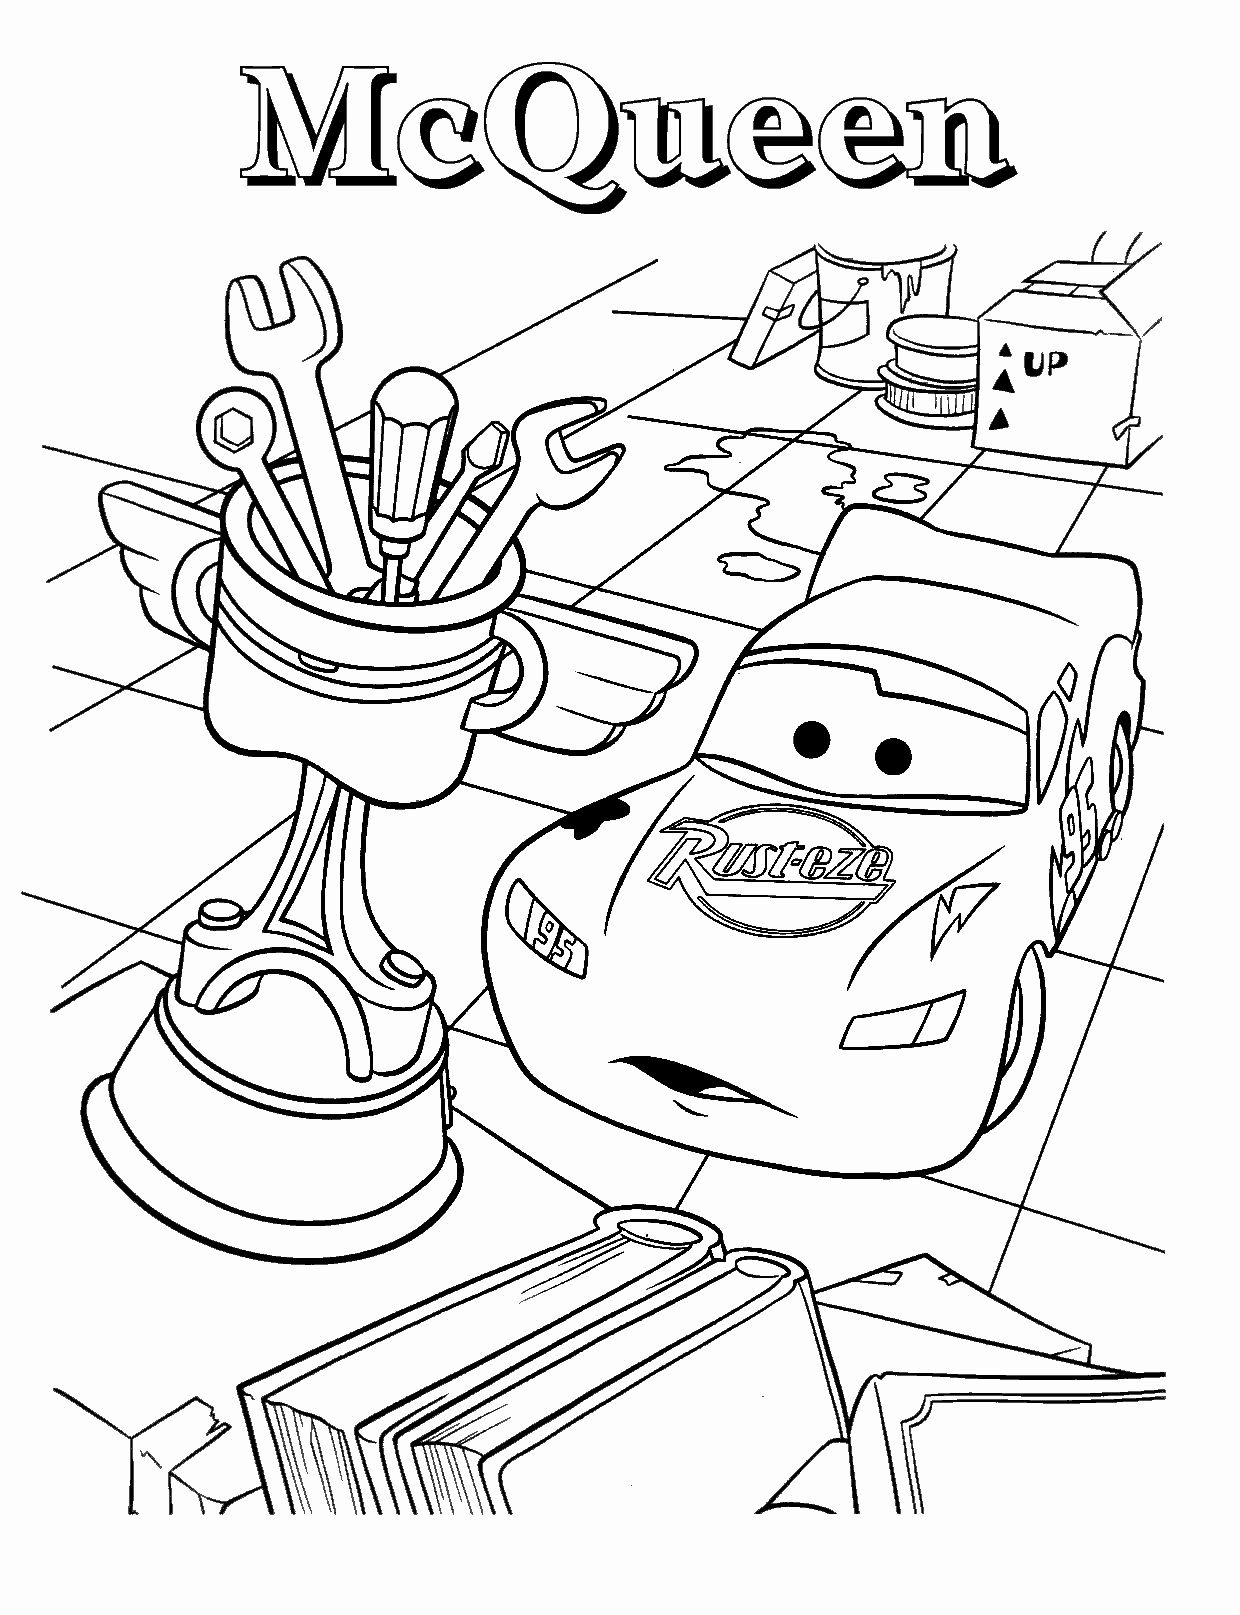 New Ideas Lightning Mcqueen Coloring Pages Printable In 2020 Disney Coloring Pages Cars Coloring Pages Coloring Pages